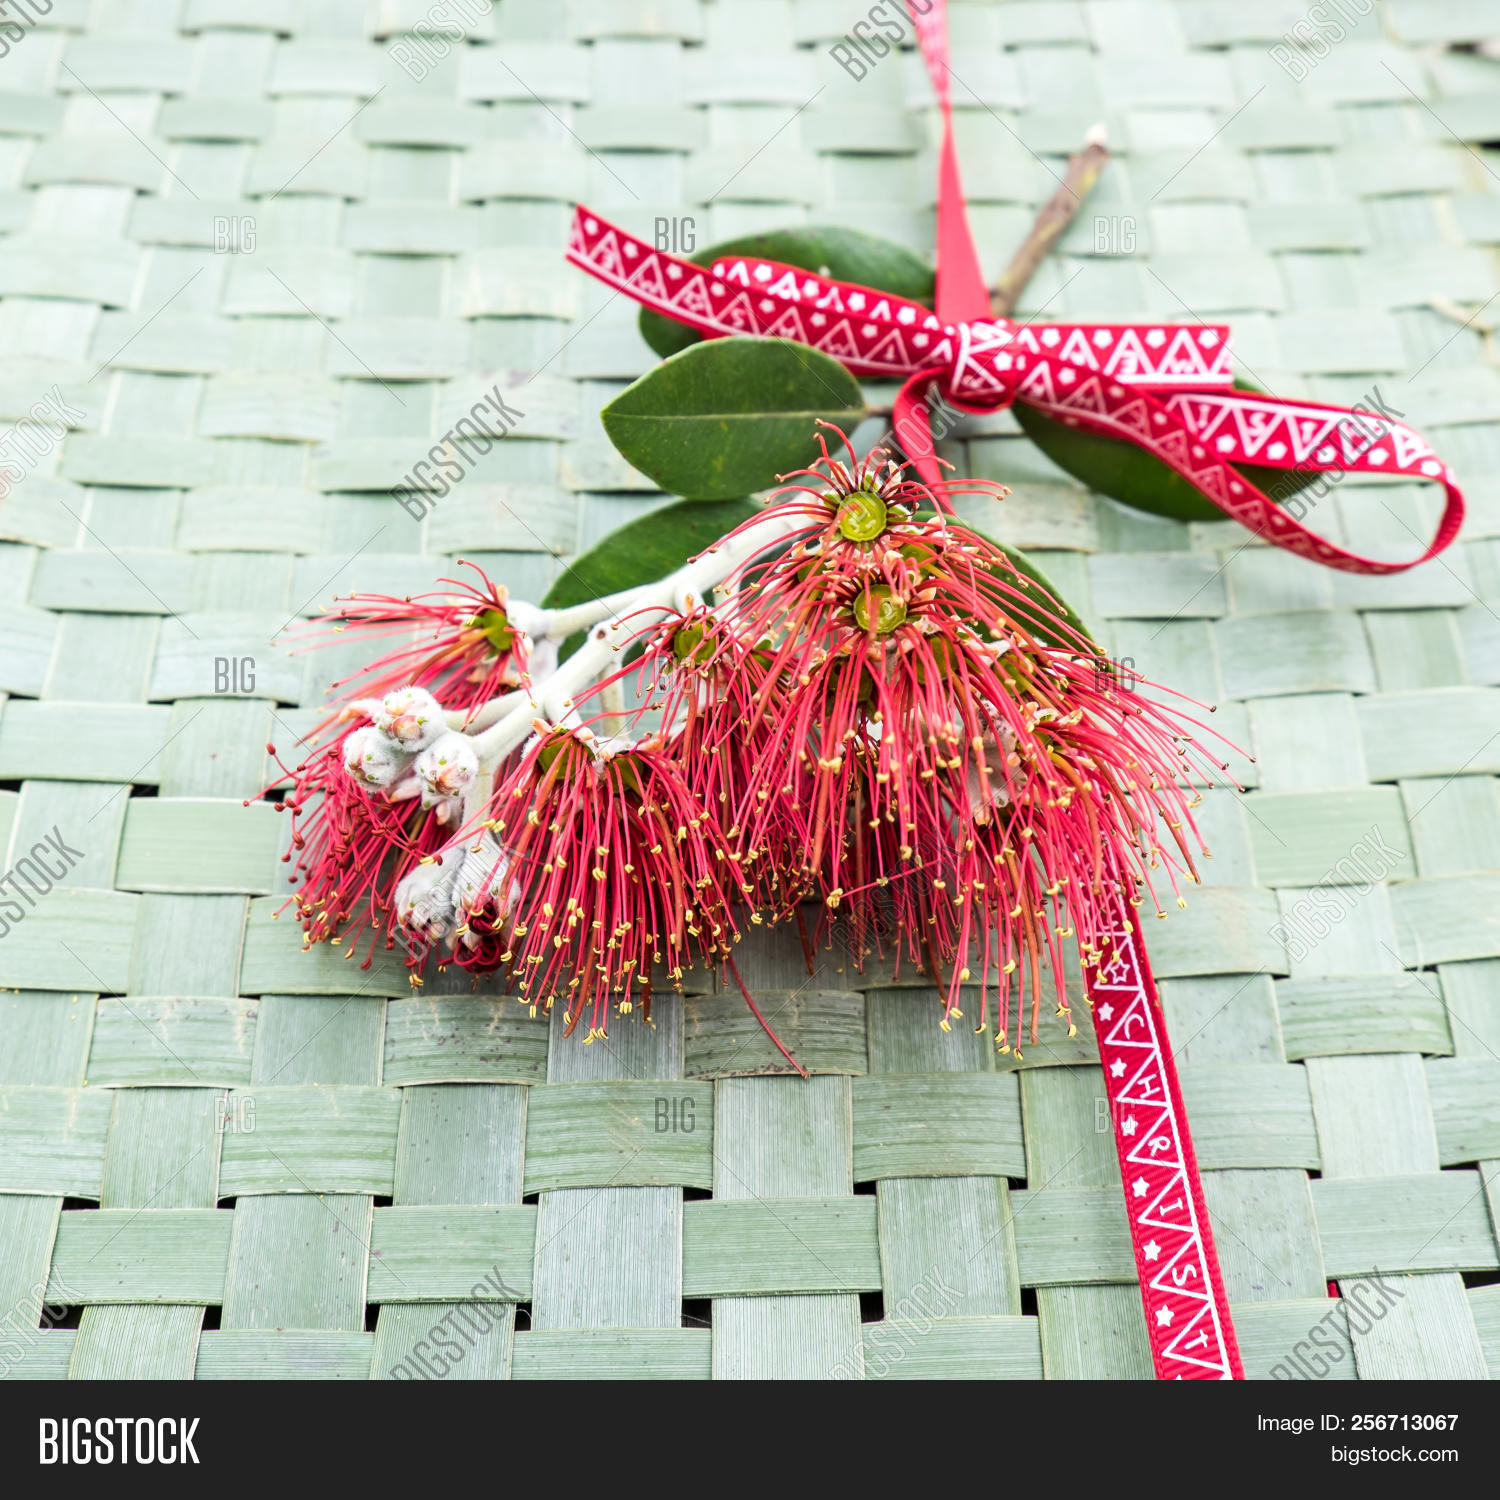 New Zealand Christmas Image Photo Free Trial Bigstock